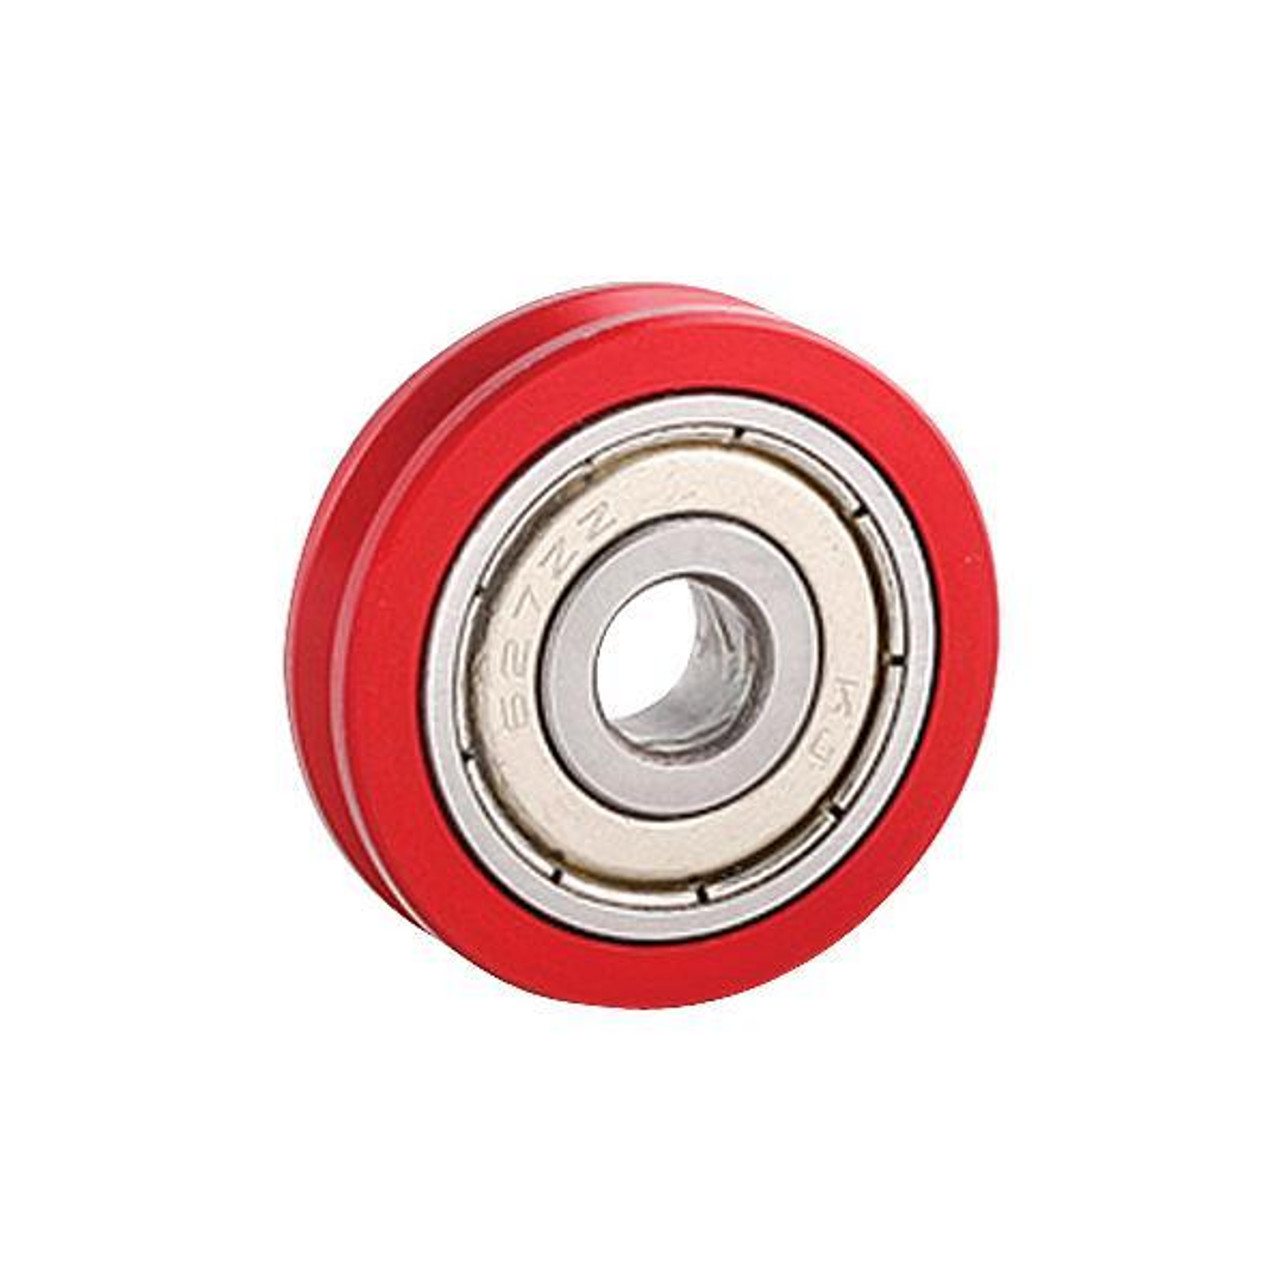 Throttle pulley with roller JI611-4621